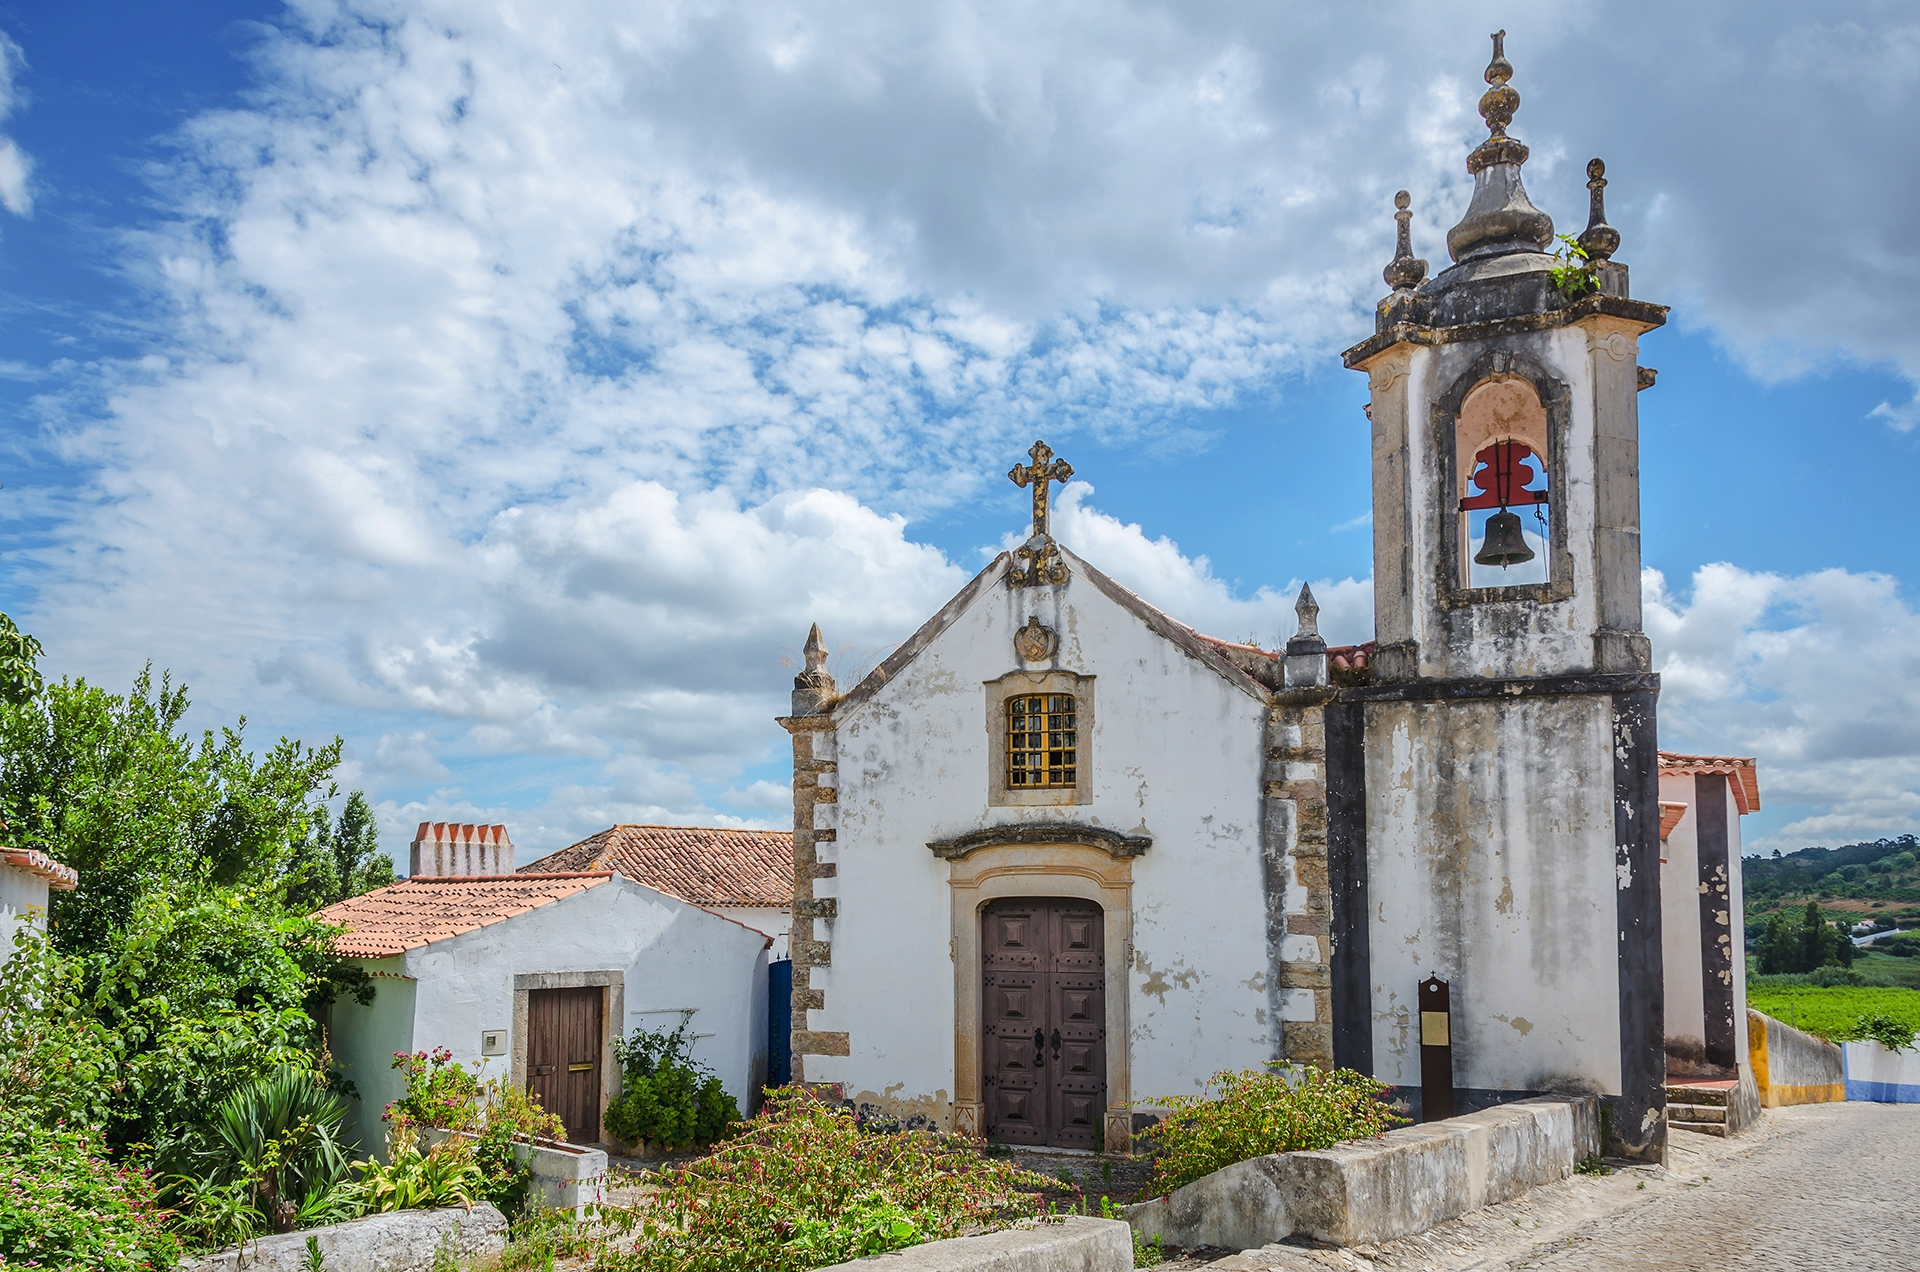 Church-in-Obidos-Portugal-on-cloudy-sky